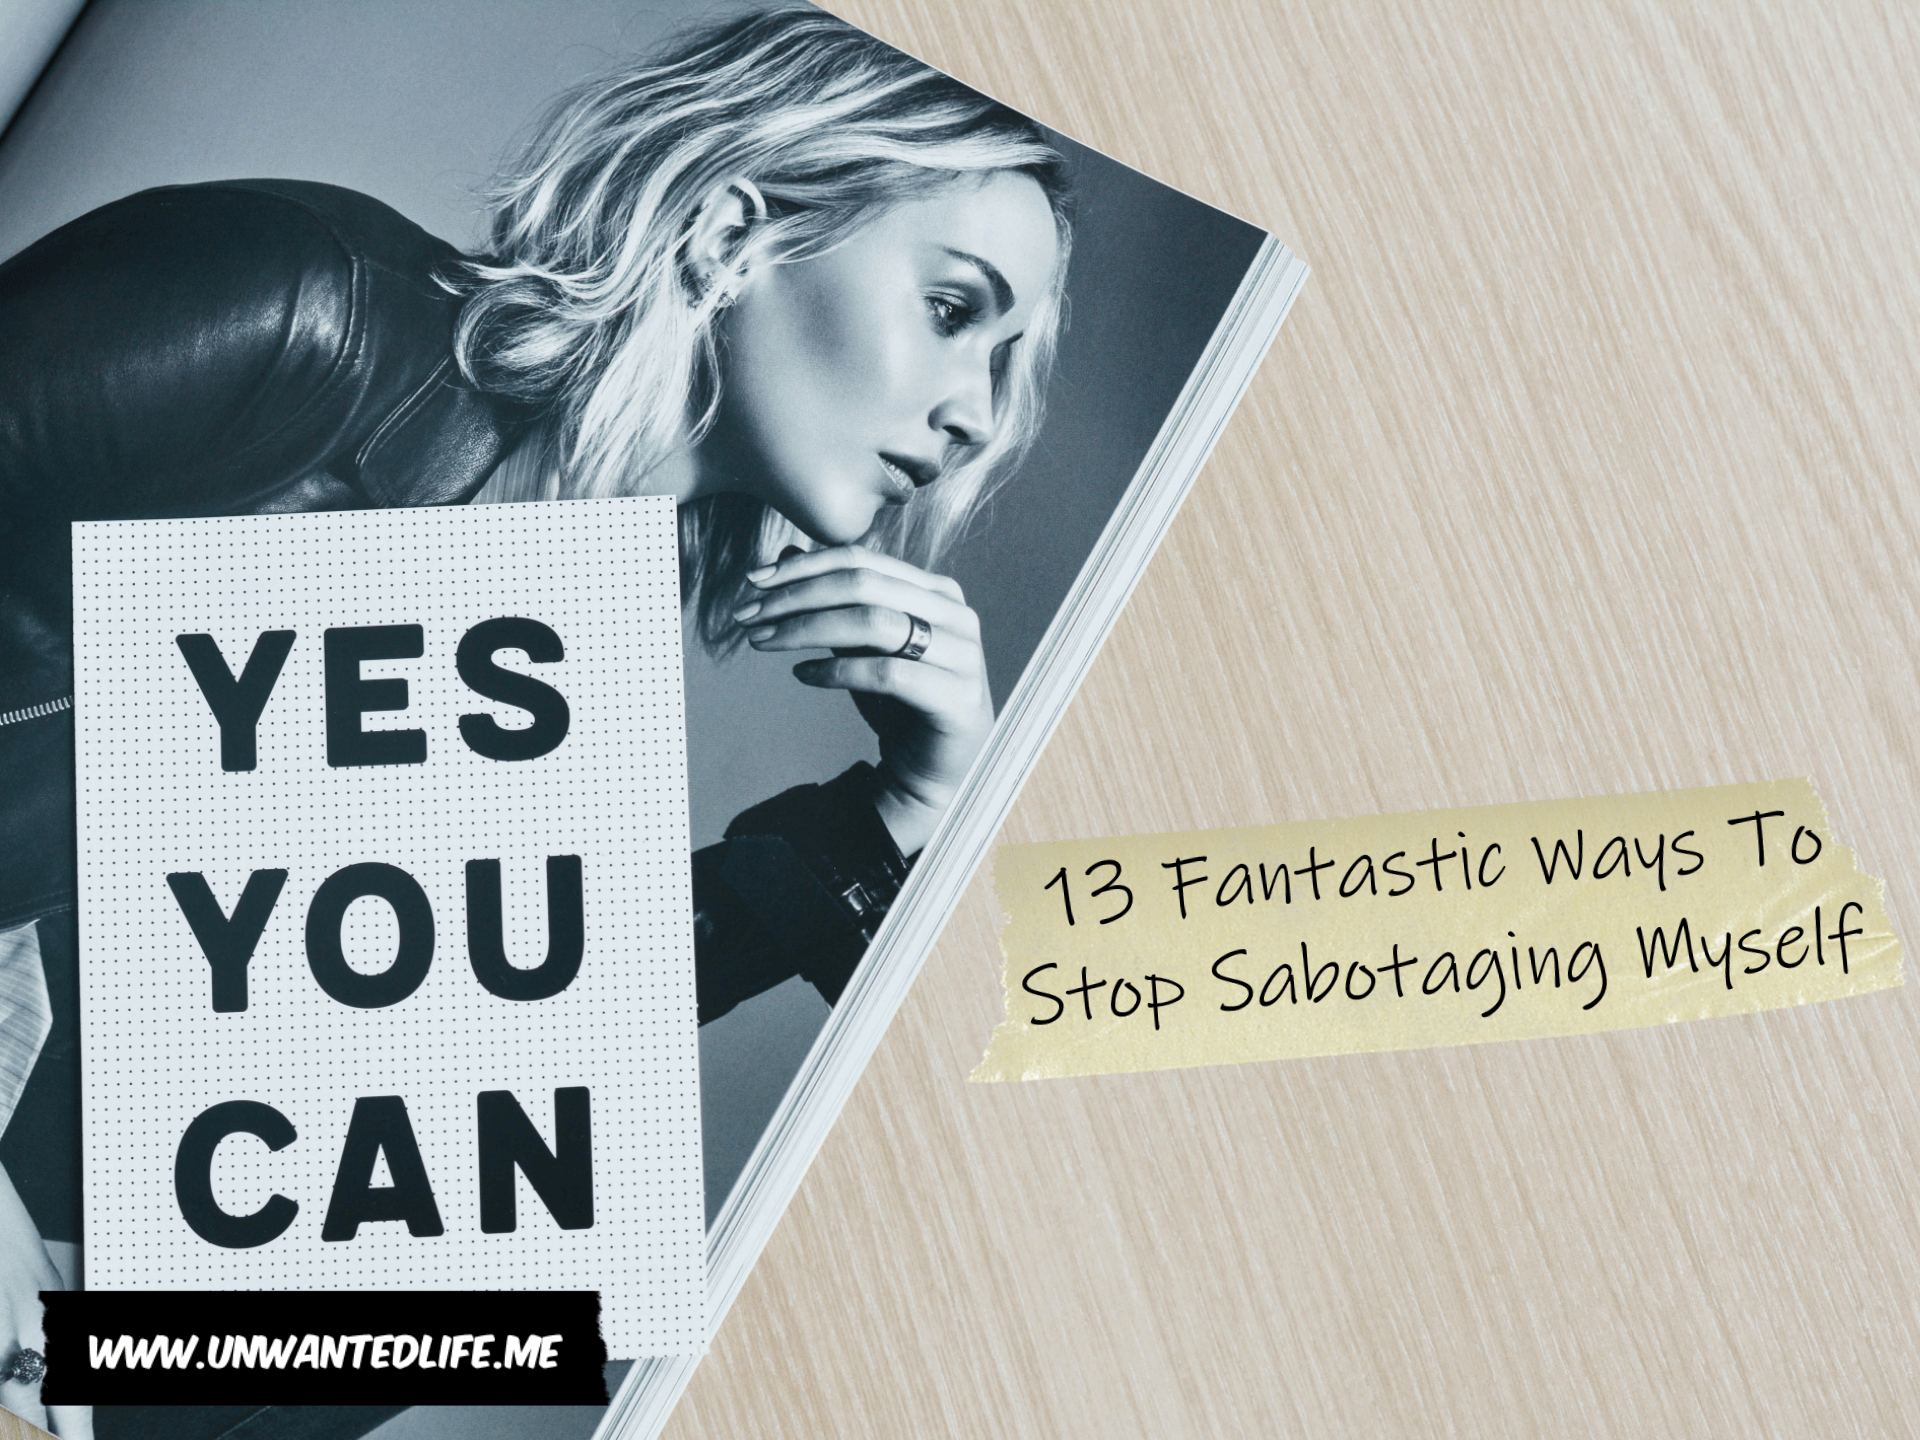 """A photo of a book with a white woman on the cover with the words """"yes you can"""" printed on it to represent the topic of the article - 13 Fantastic Ways To Stop Sabotaging Myself"""